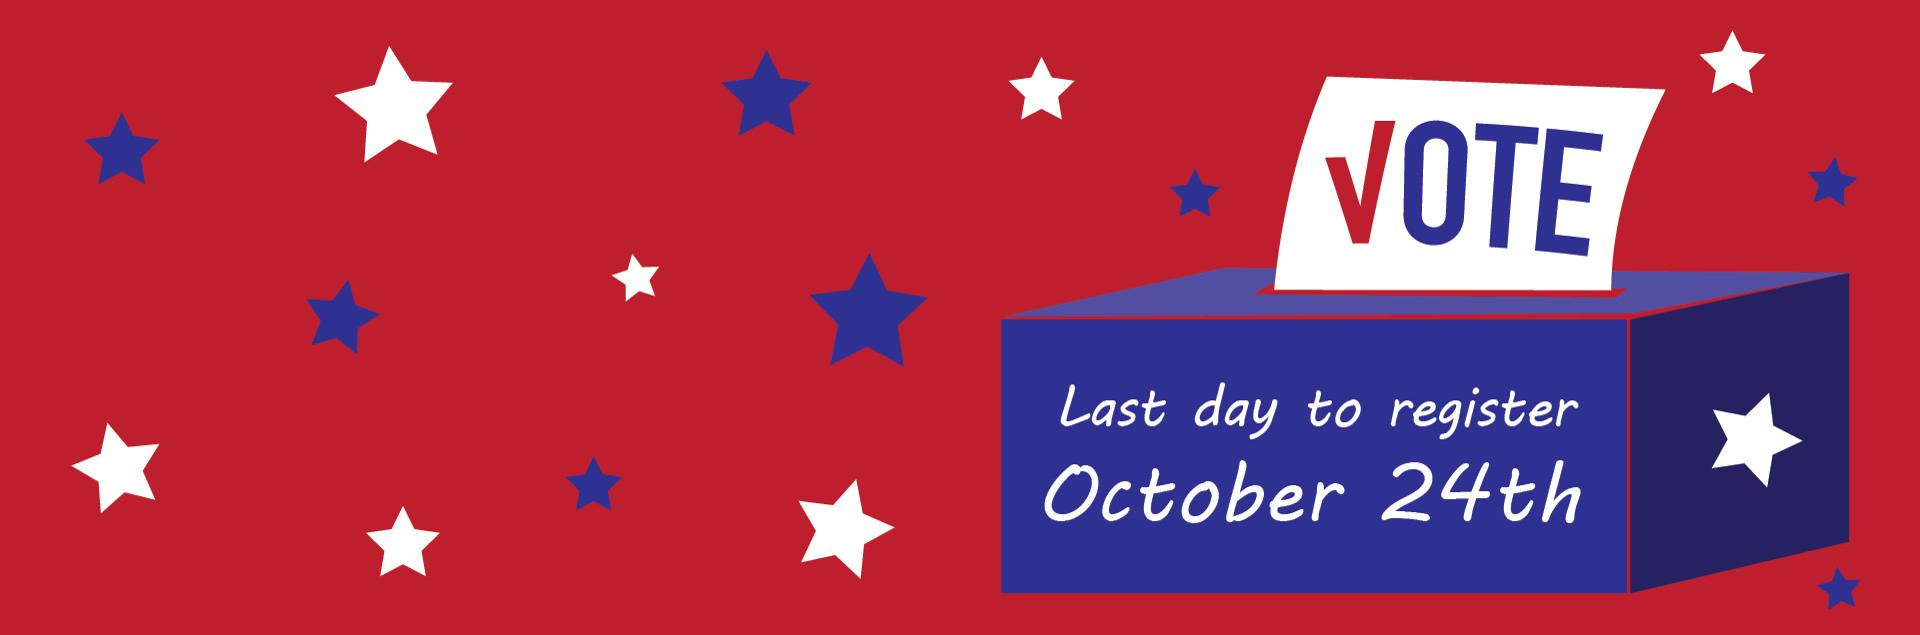 Vote - Last day to register October 24